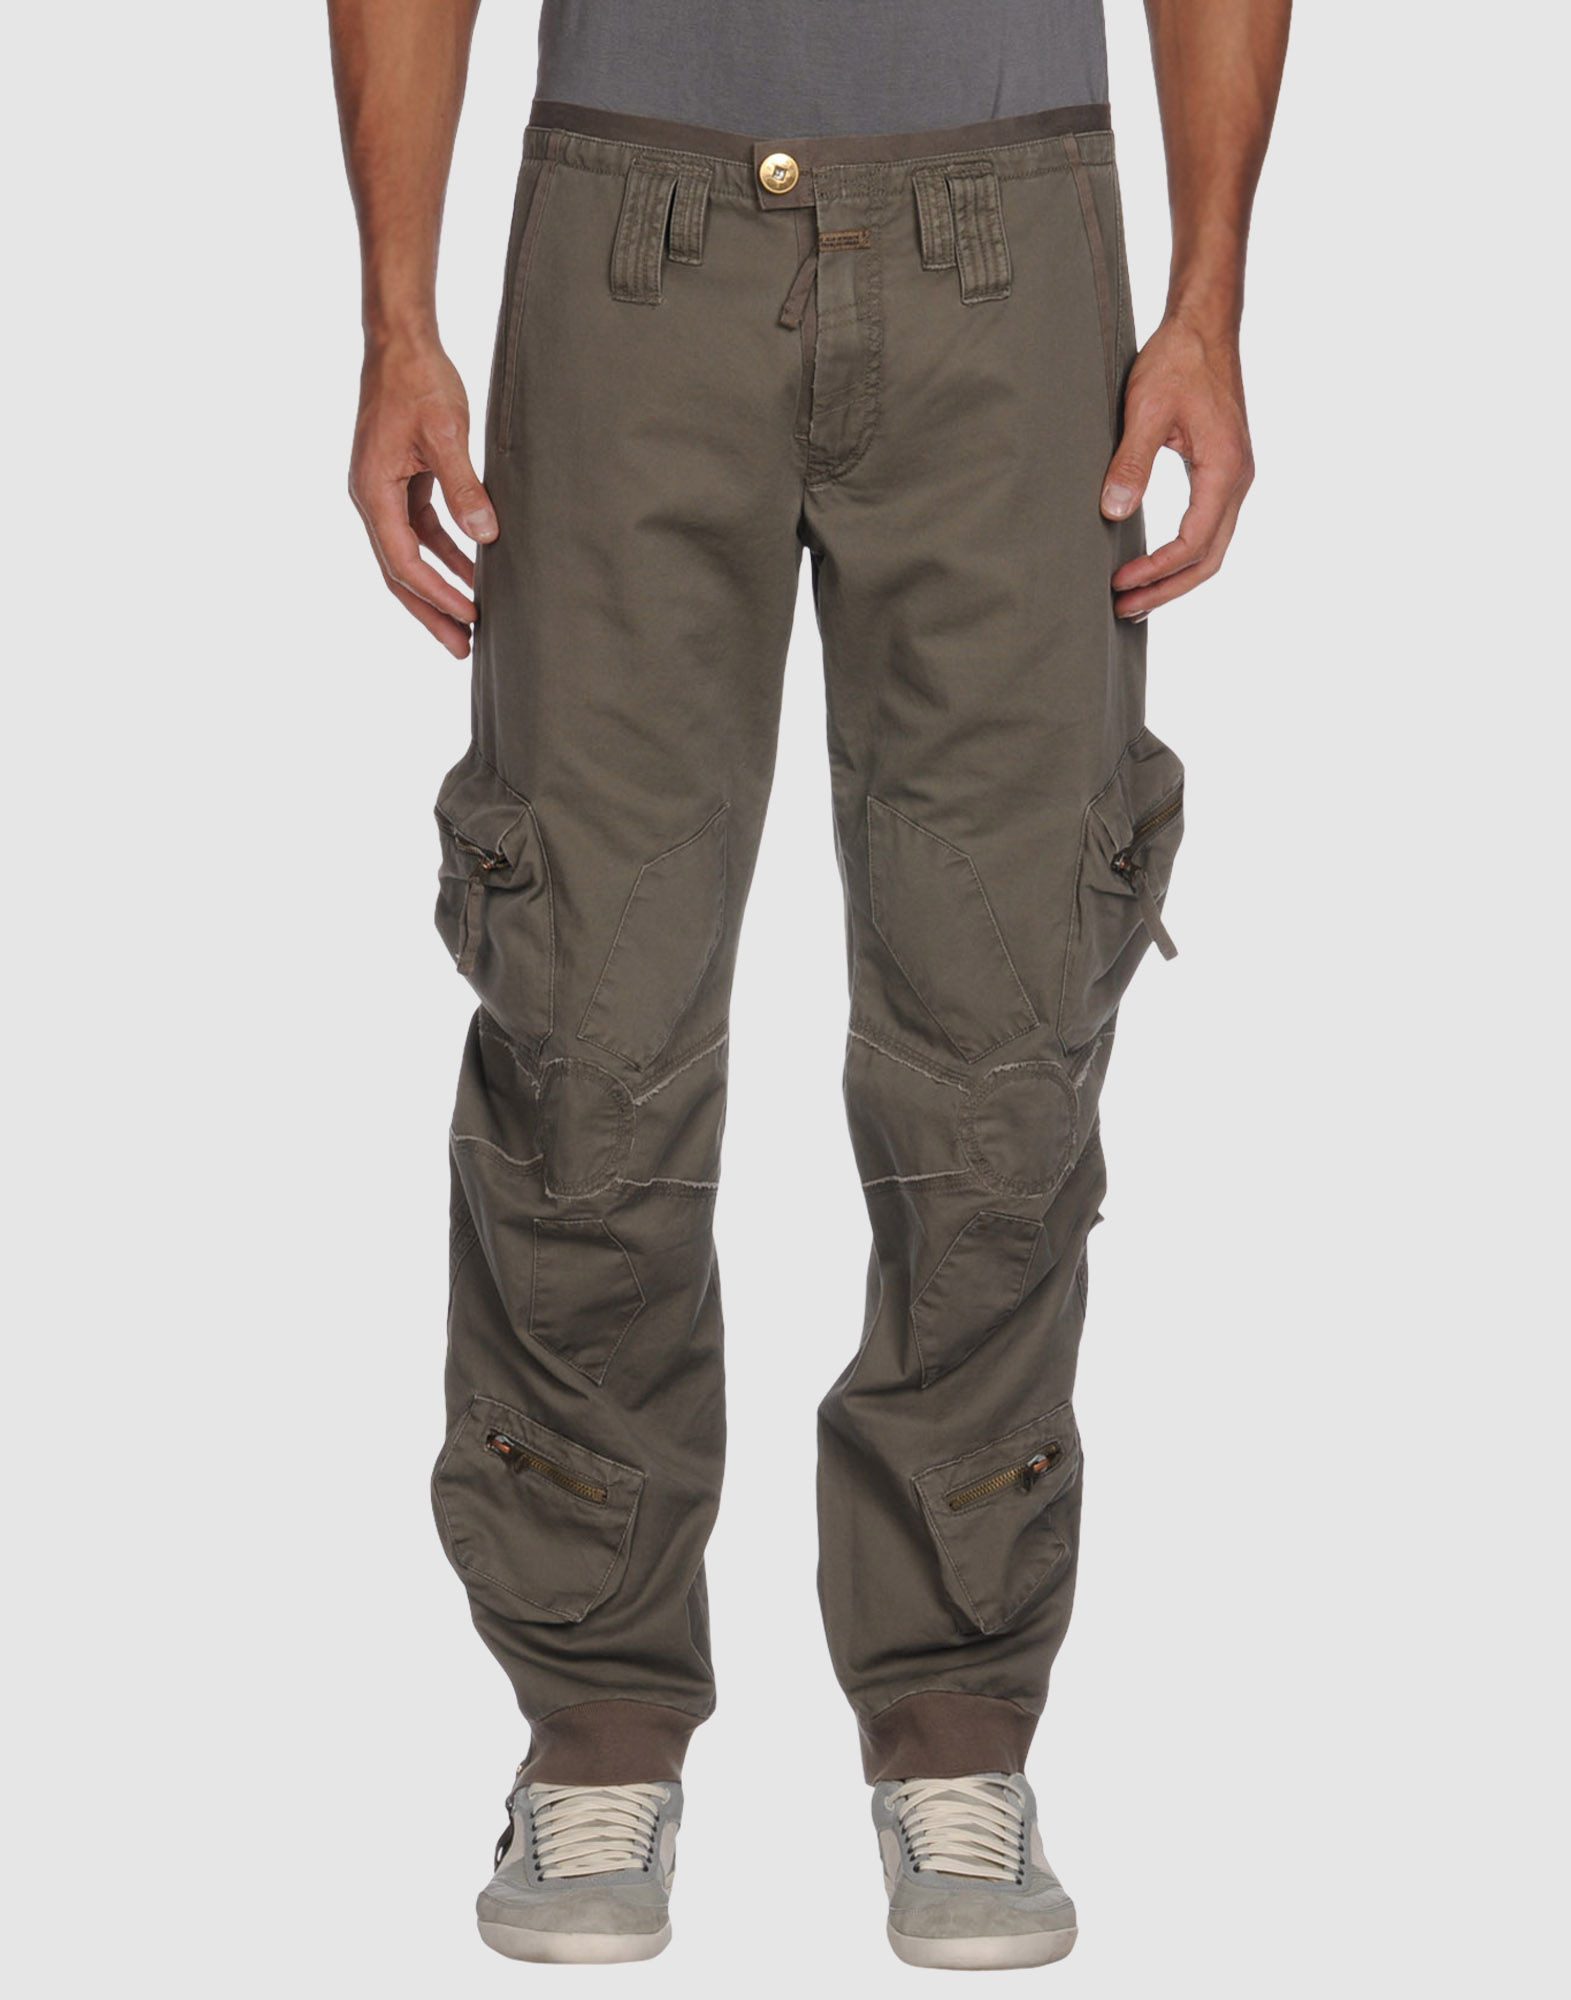 ljd marithe 39 francois girbaud casual pants in green for men khaki lyst. Black Bedroom Furniture Sets. Home Design Ideas